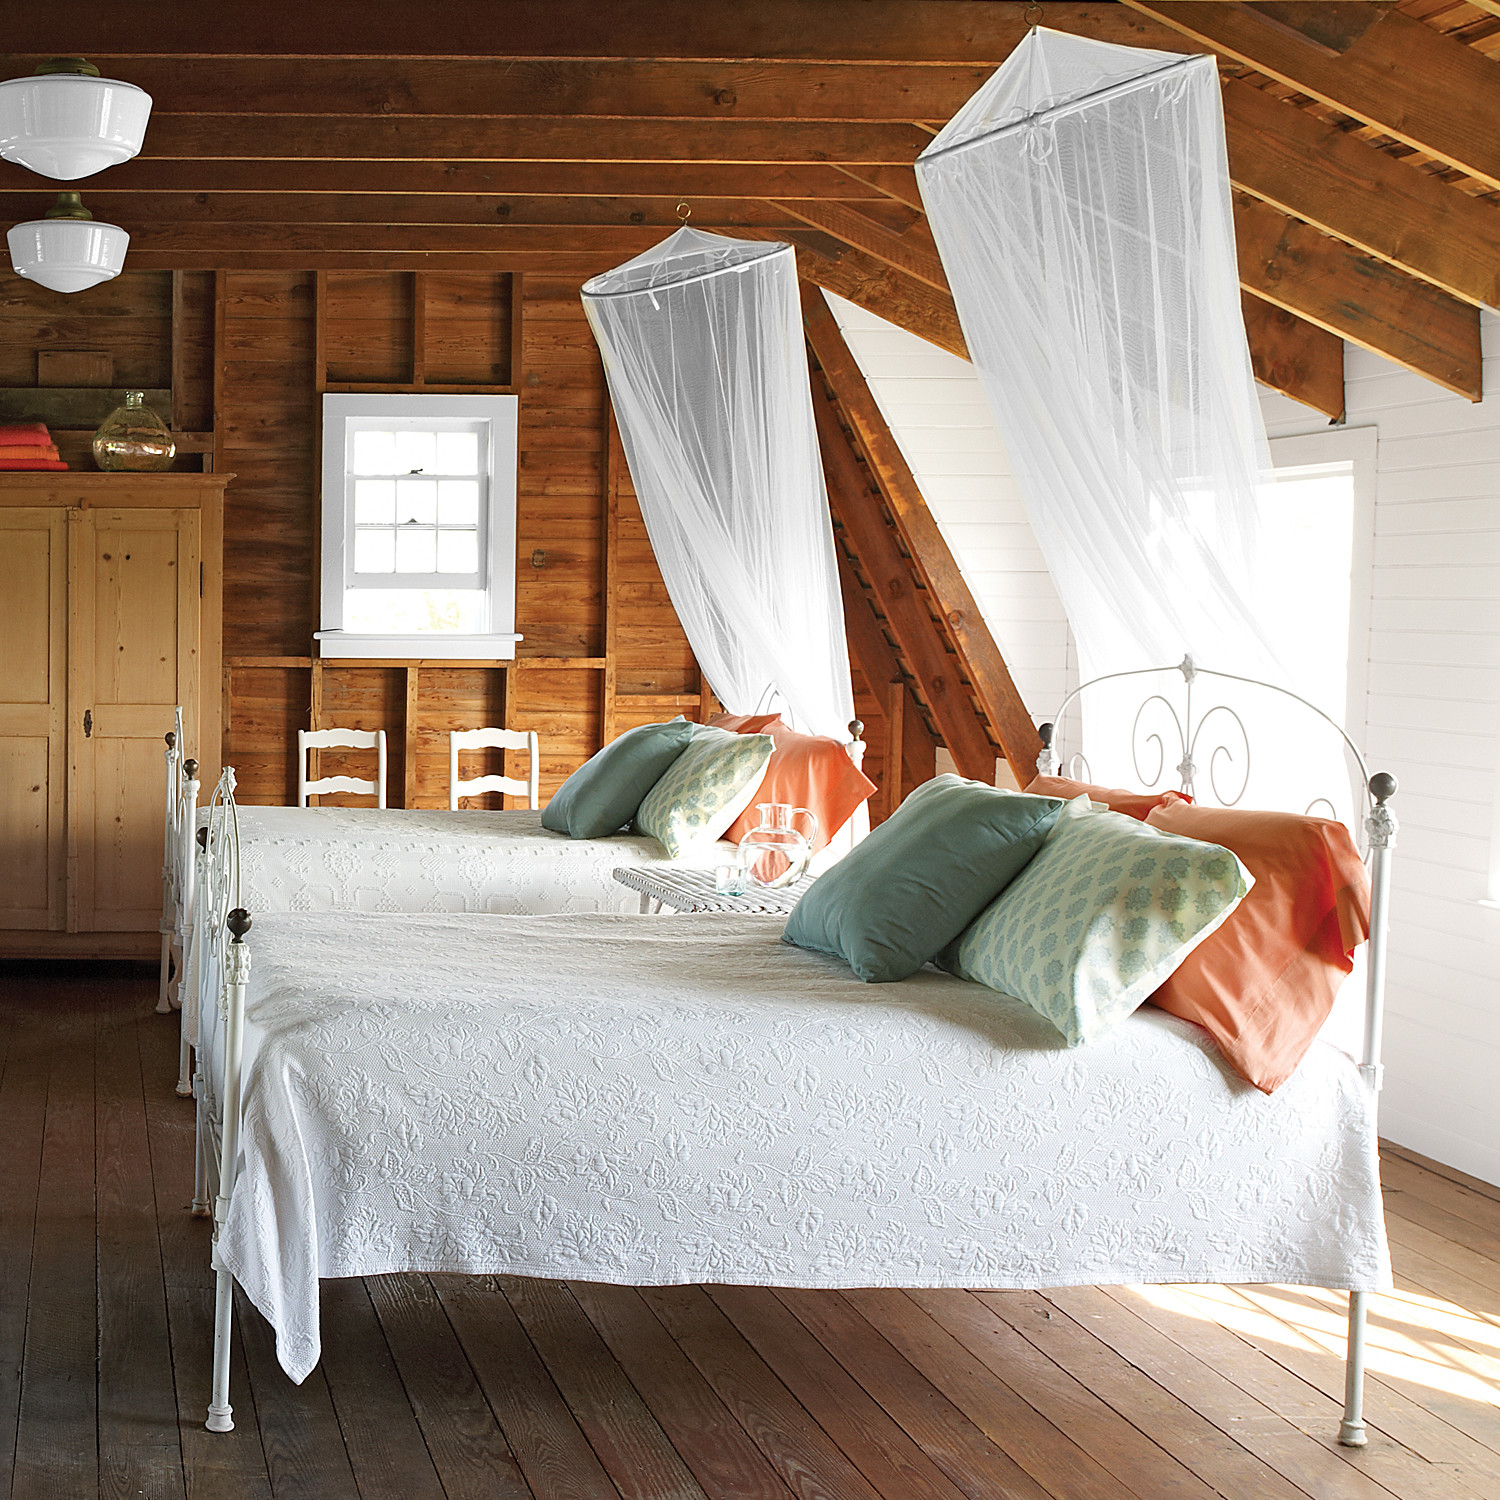 & Best Bedroom Designs | Martha Stewart